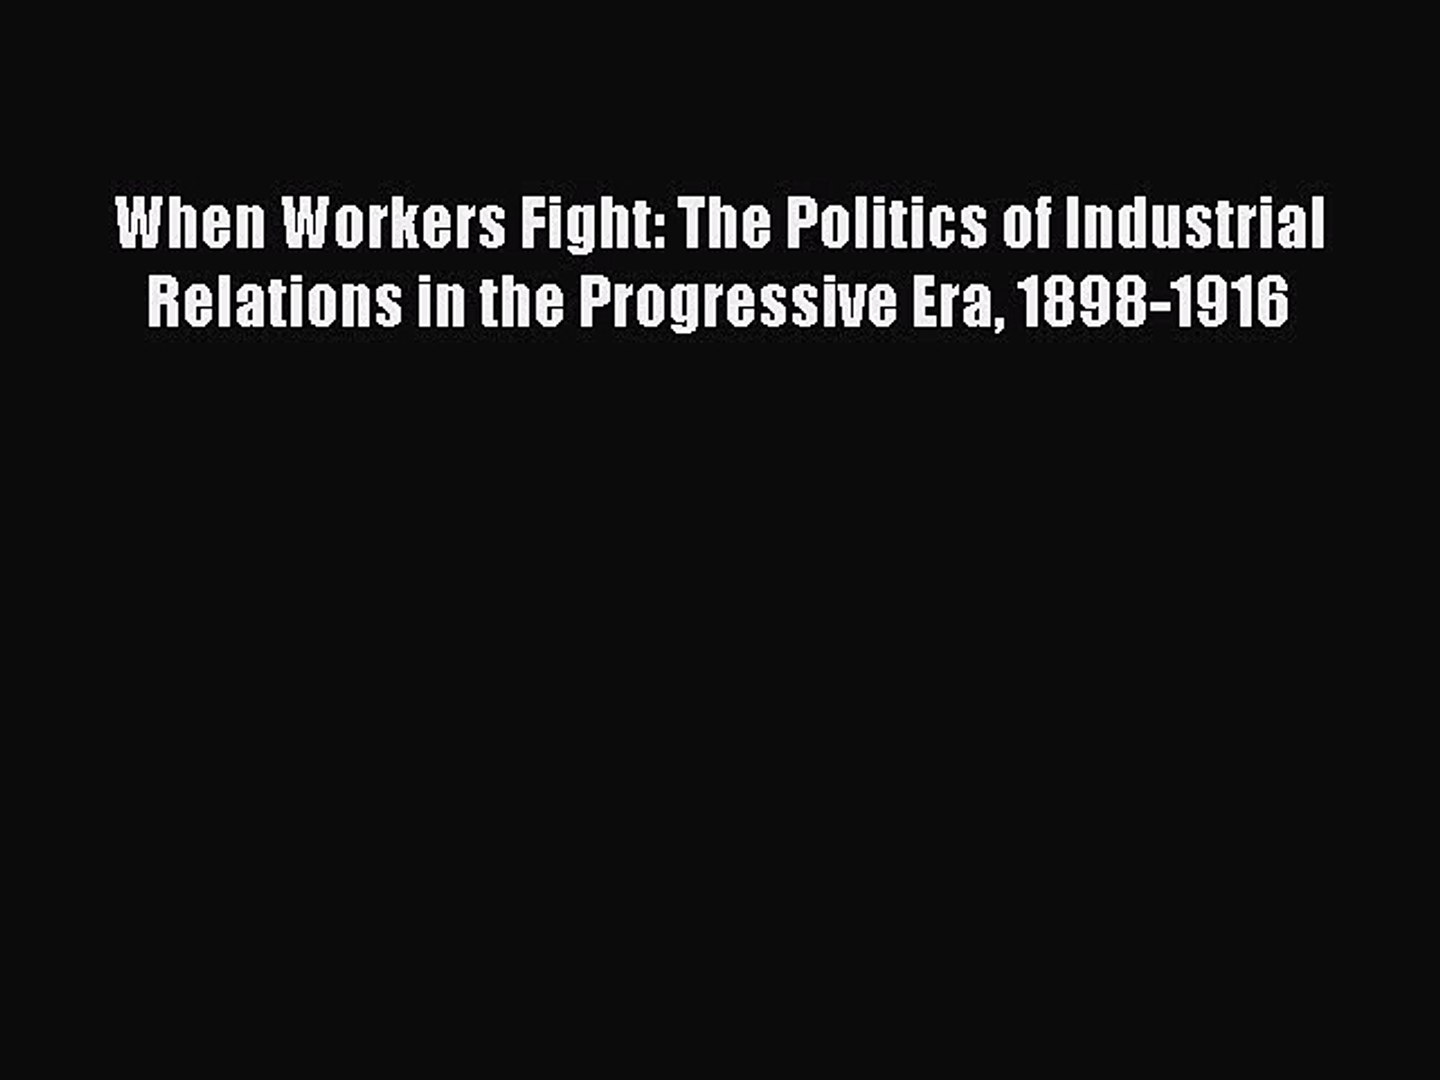 Download When Workers Fight: The Politics of Industrial Relations in the Progressive Era 1898-1916